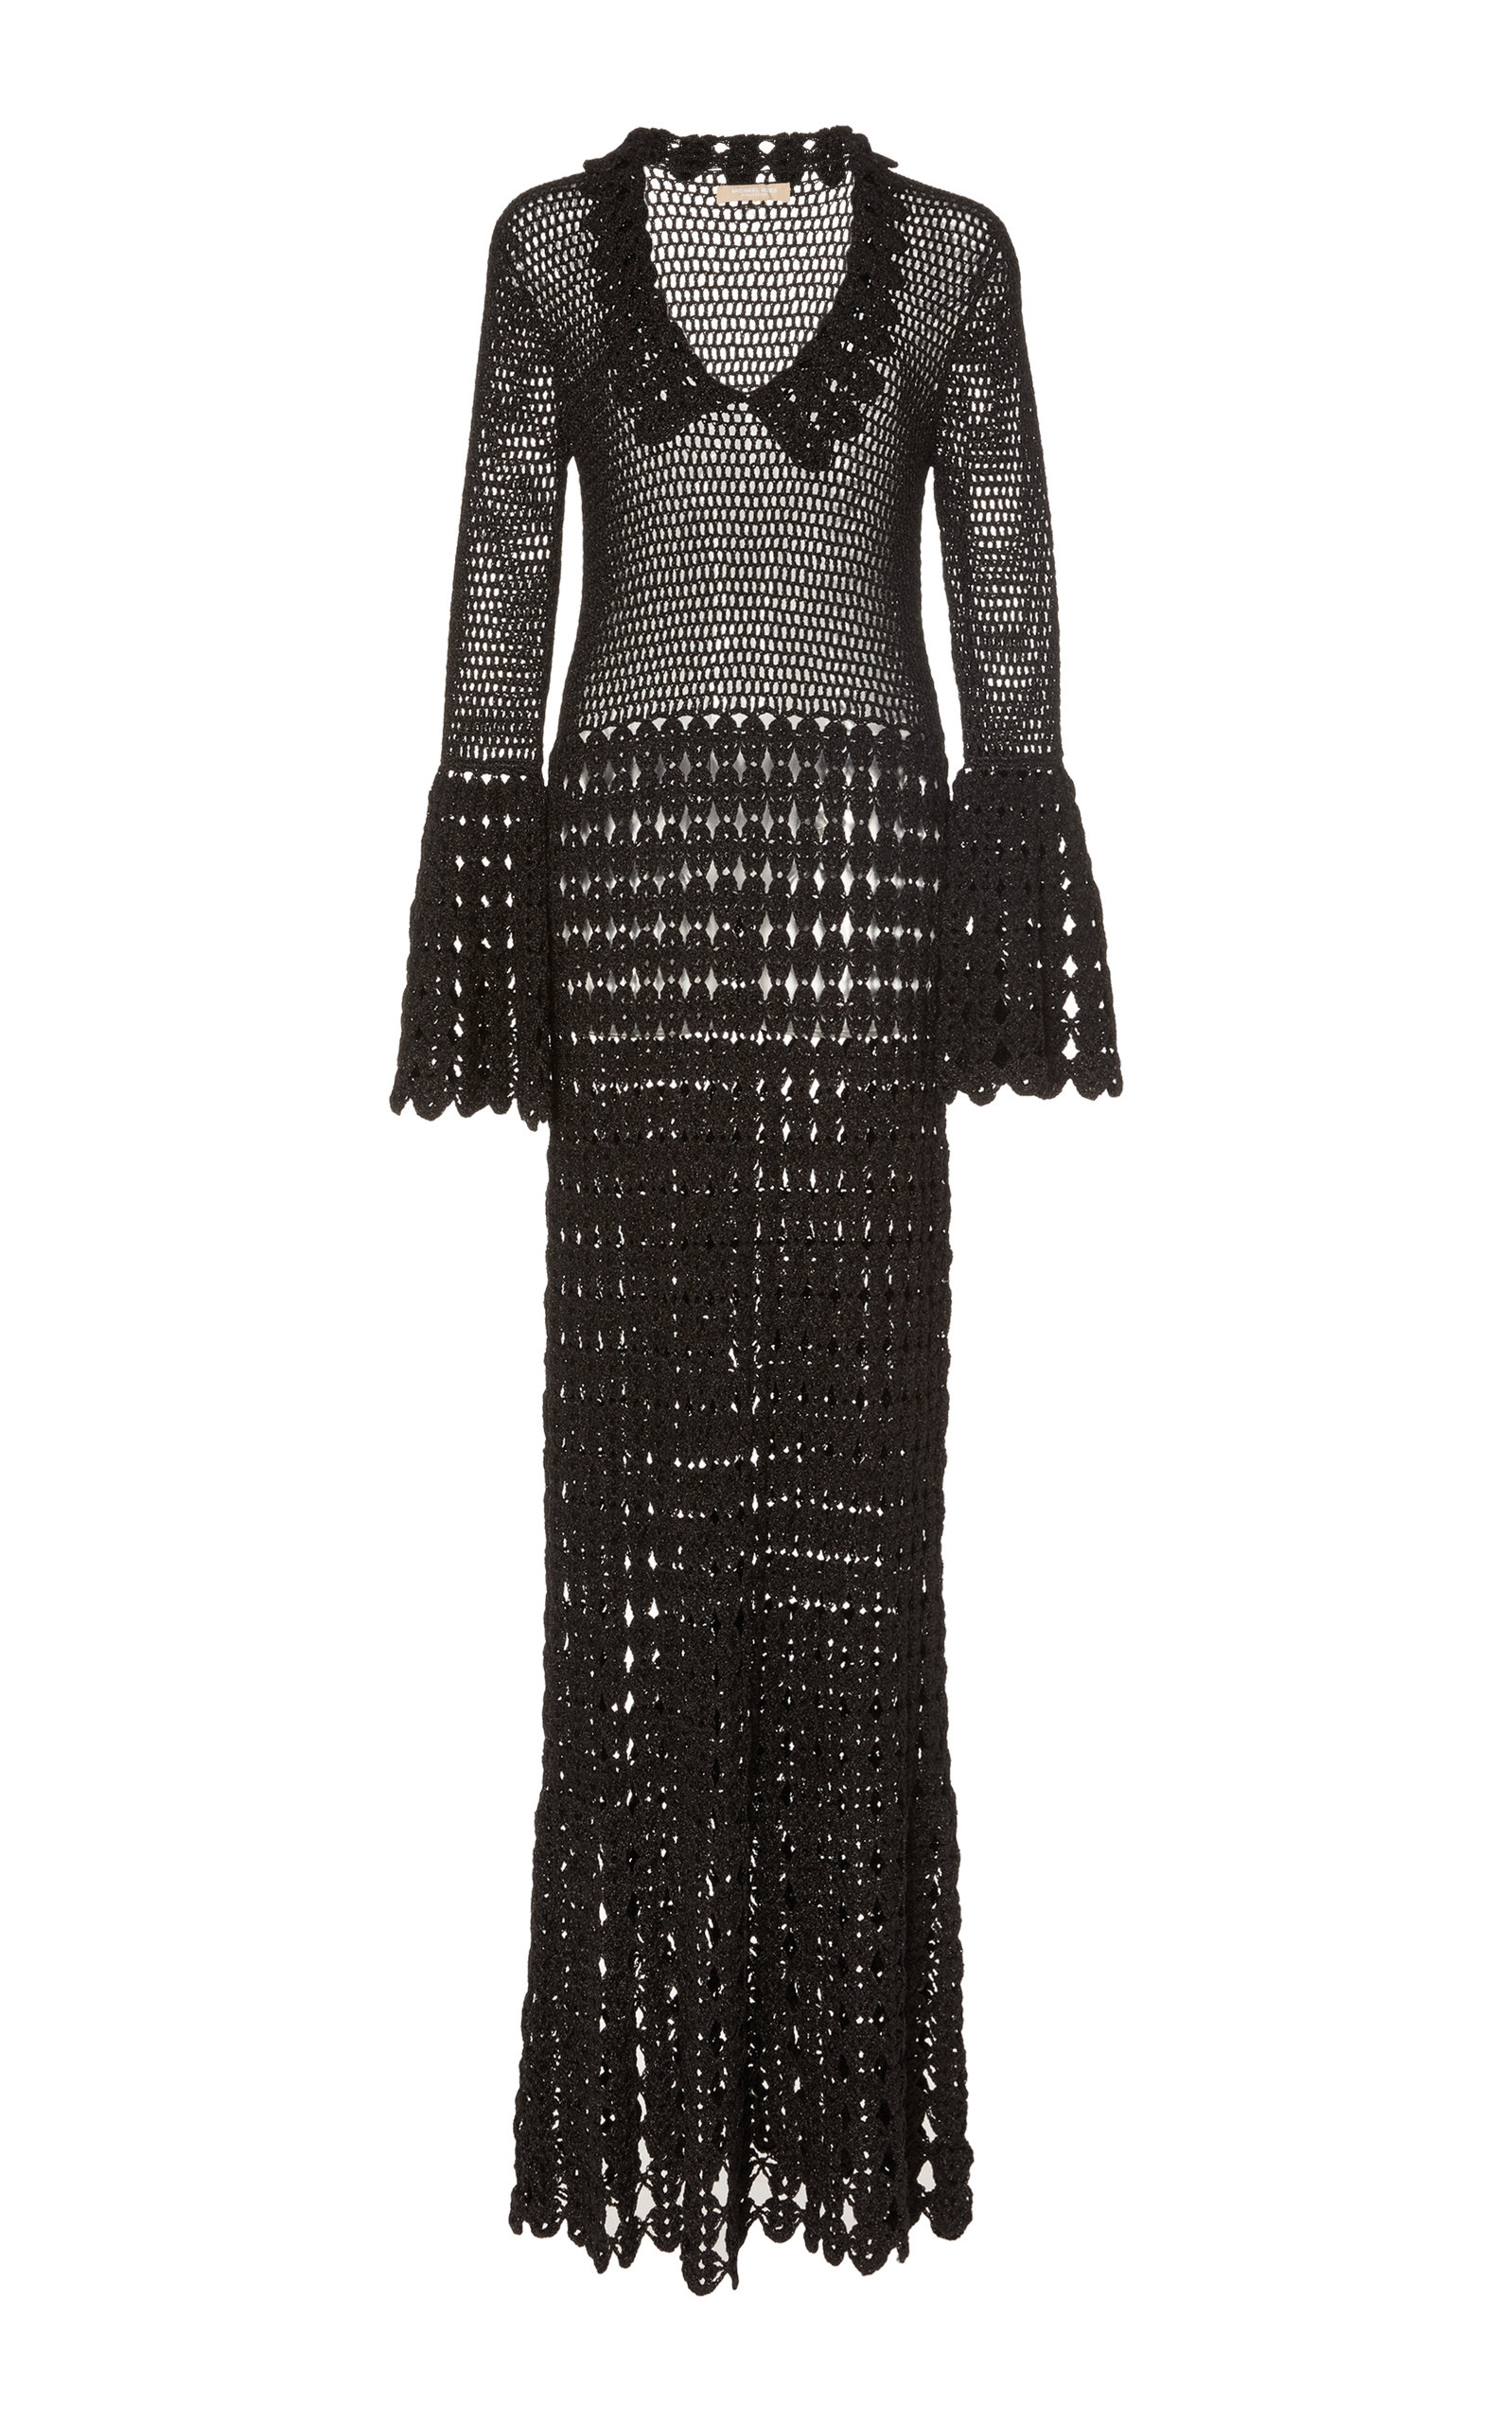 499994e415d Crocheted Cotton Maxi Dress By Michael Kors Collection Moda Operandi